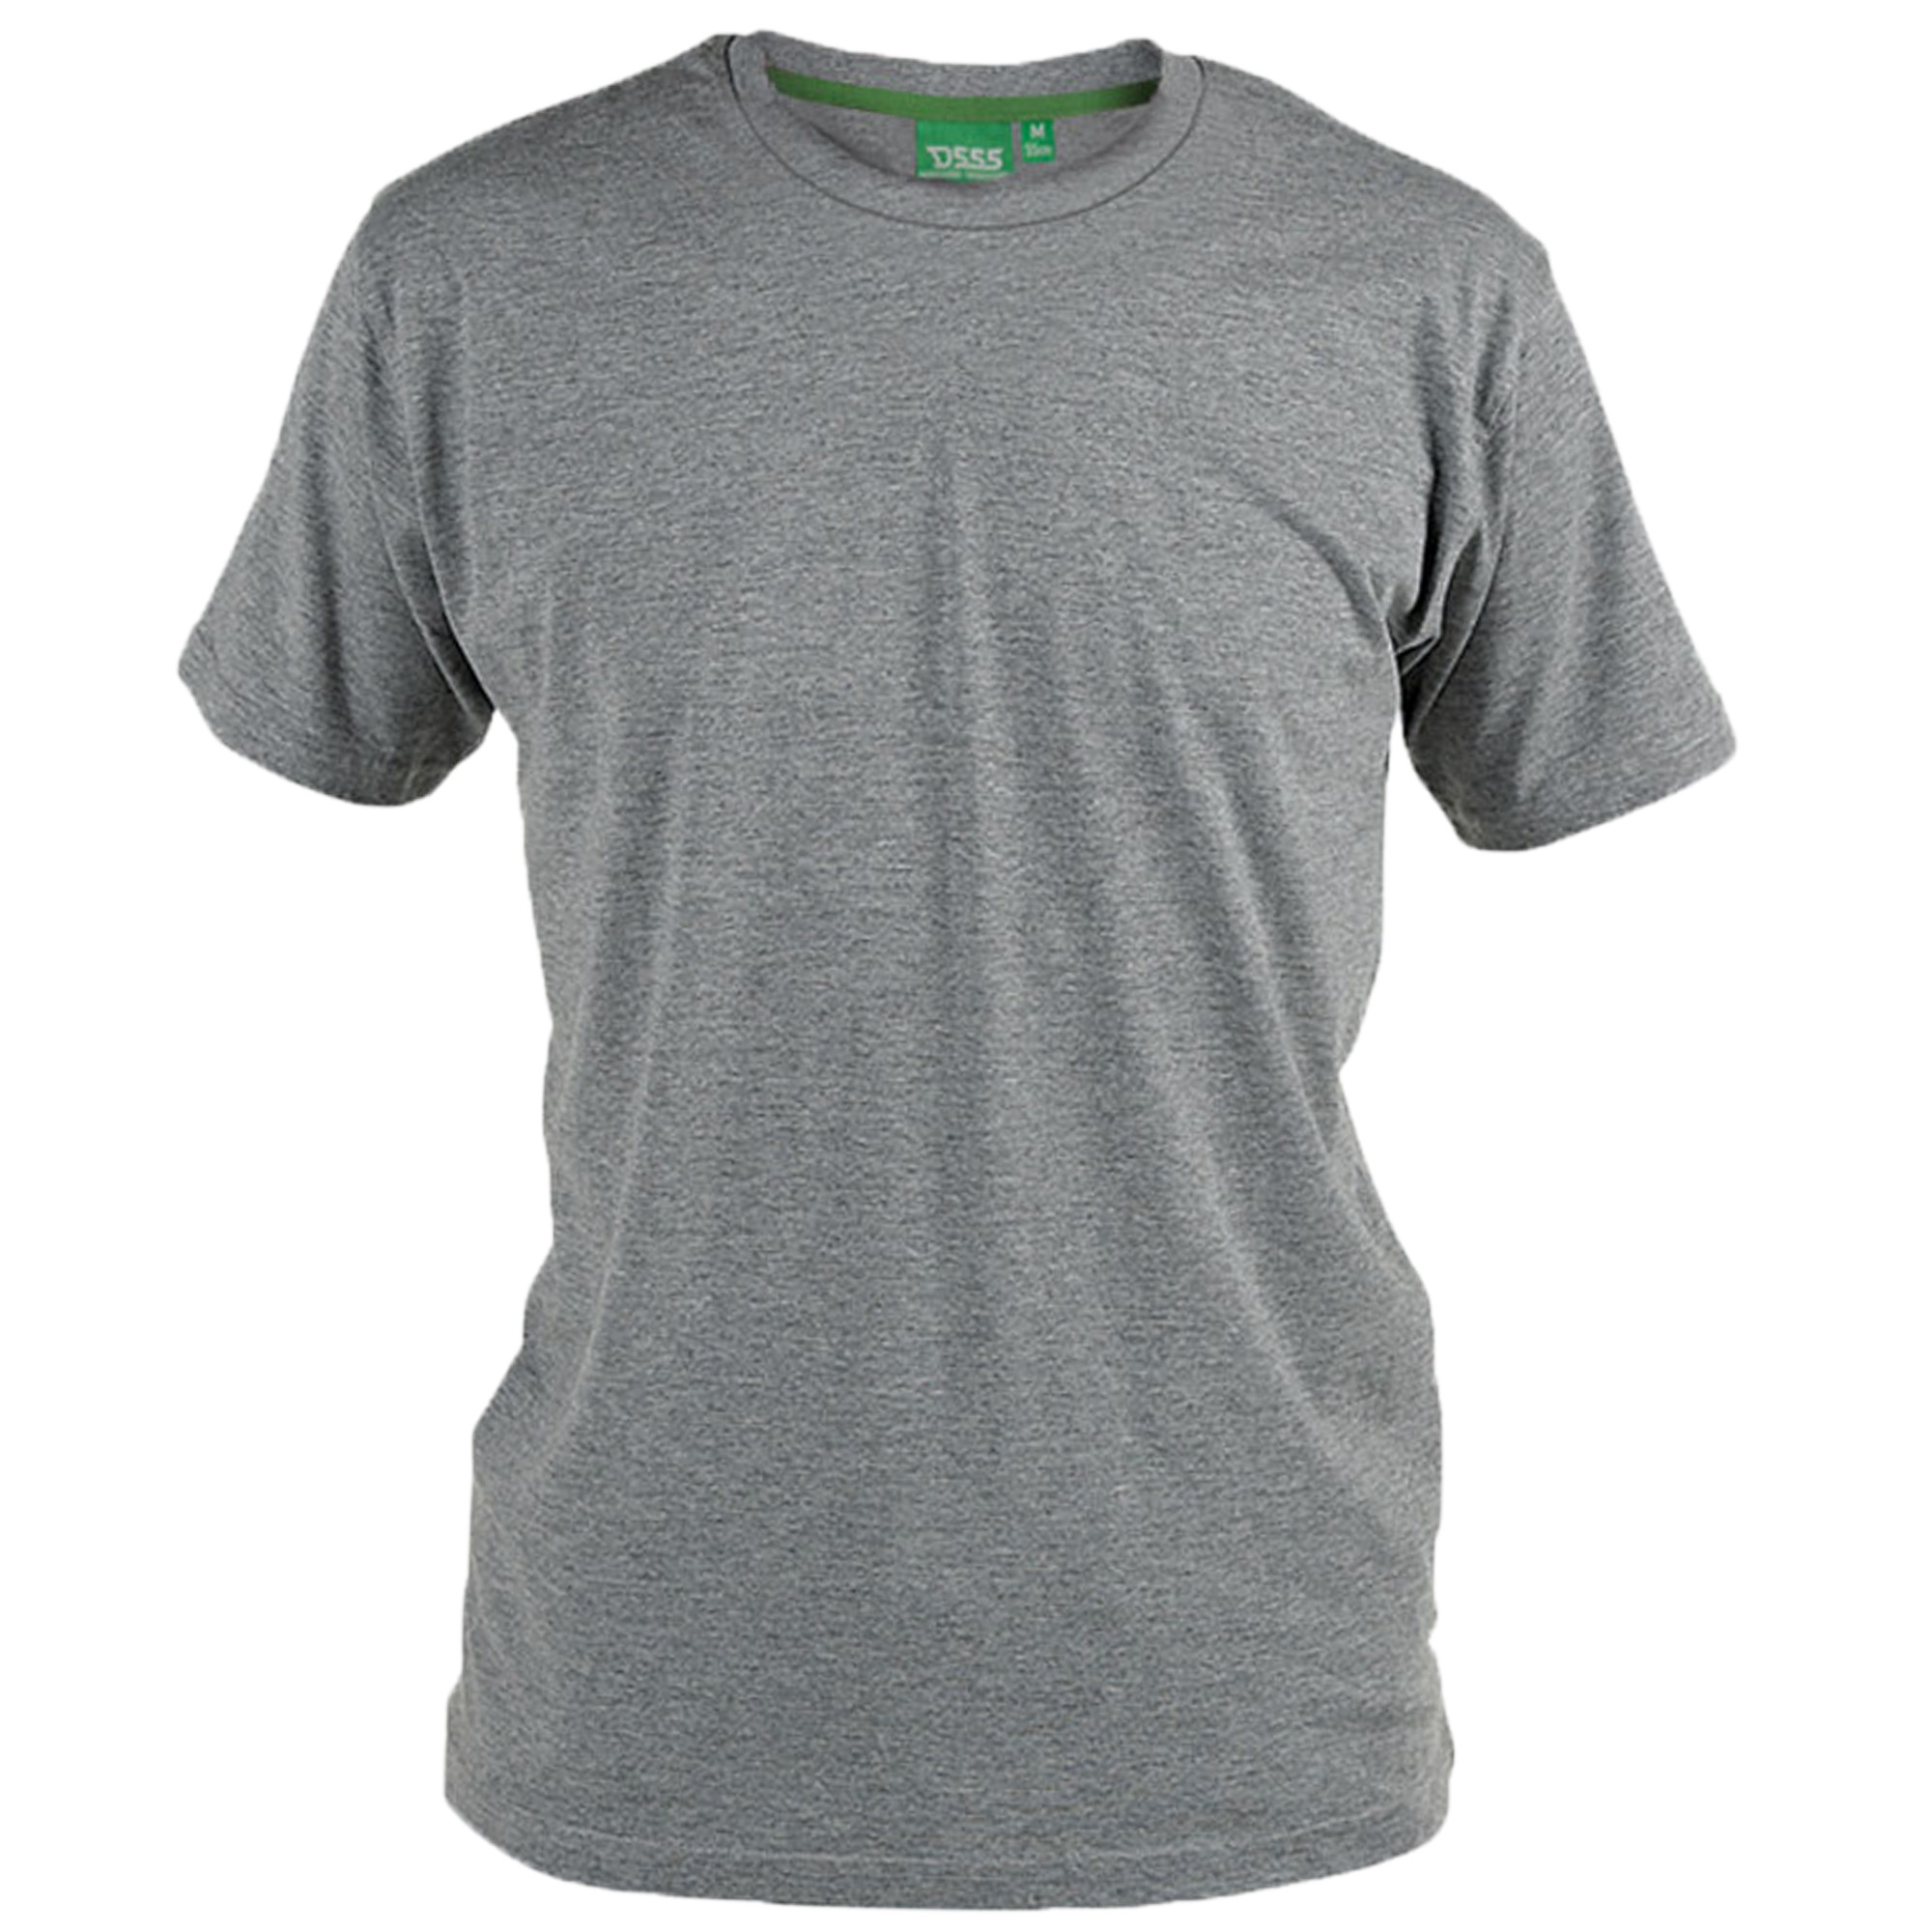 175f2588470683 Mens Short Sleeved Plain Big King Size T Shirts by D555 Duke Grey - Flyer2x  Large. About this product. Picture 1 of 3; Picture 2 of 3 ...